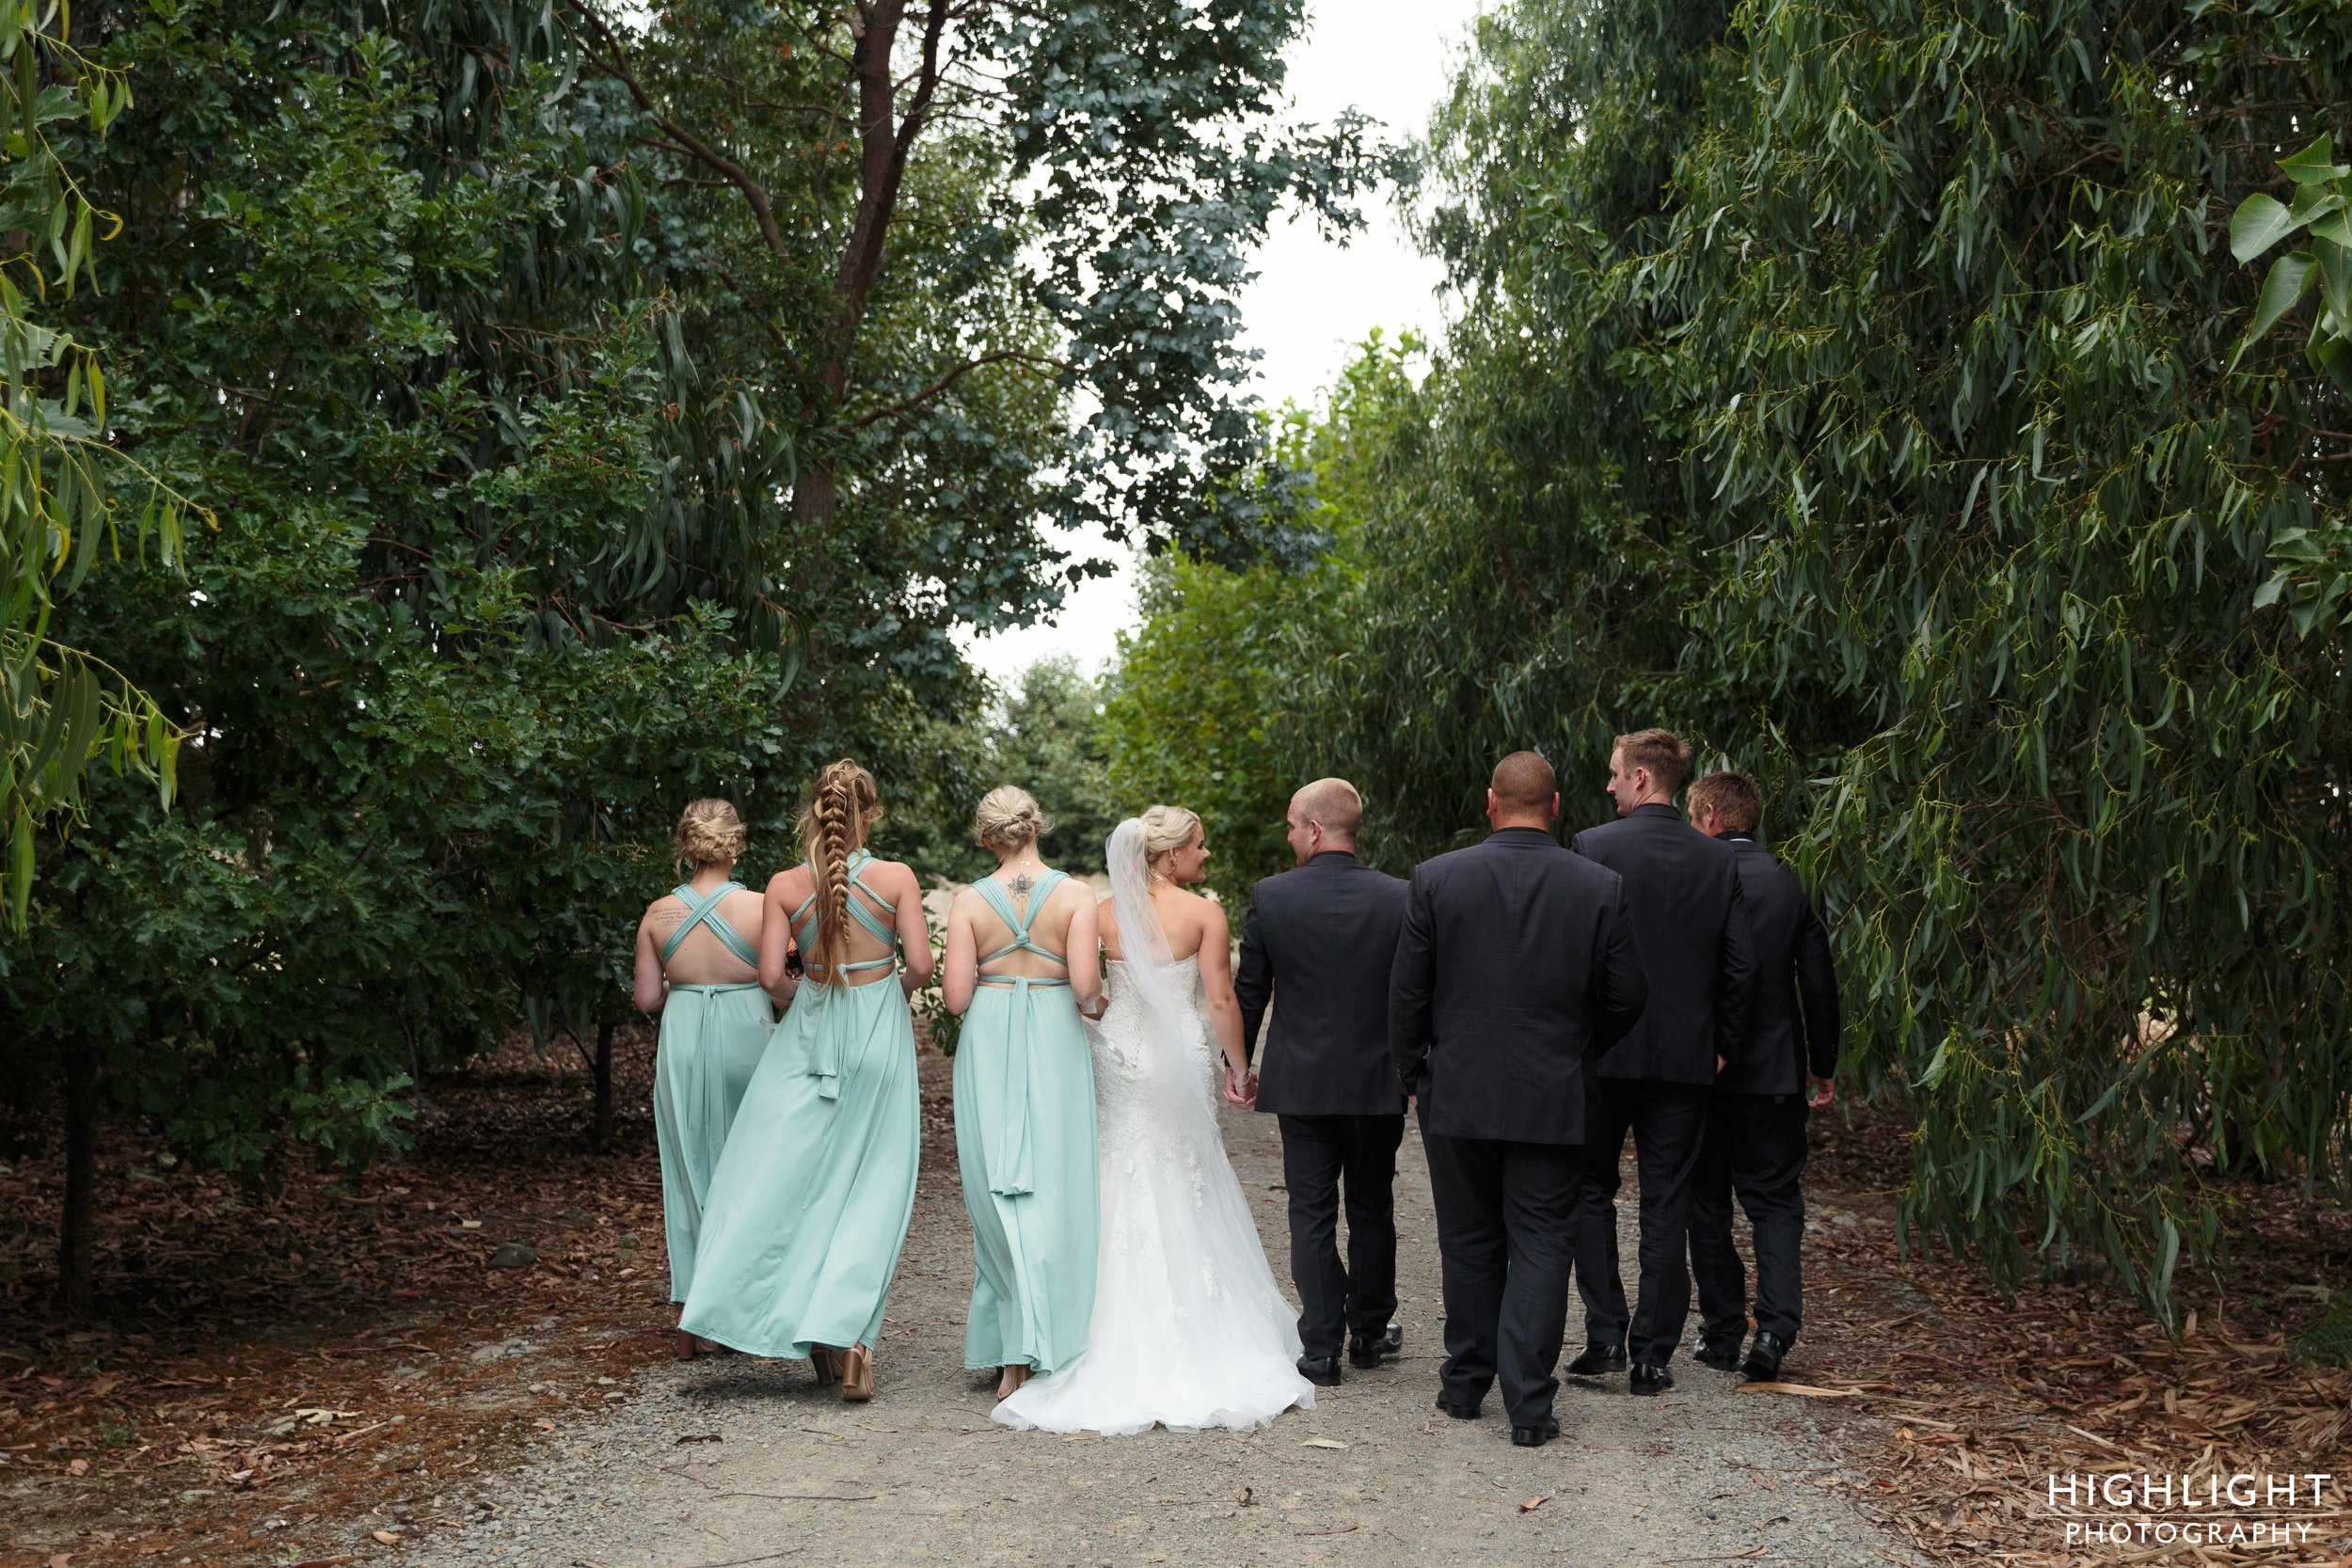 highlight-wedding-photography-new-zealand-cs-orlando-country-wedding-palmerston-north-131.jpg